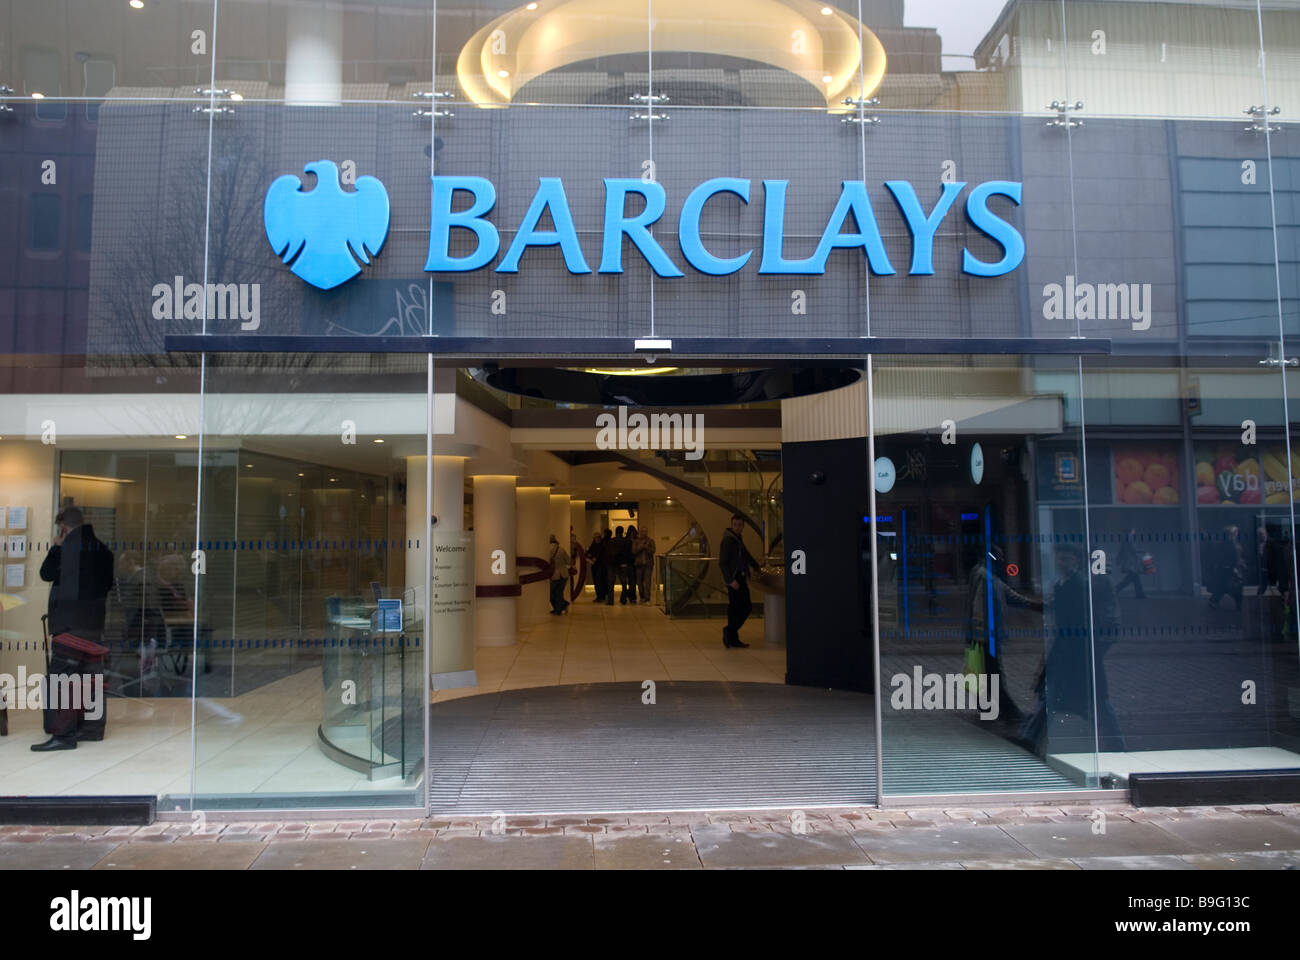 Barclays Bank on Market street Manchester city centre UK - Stock Image